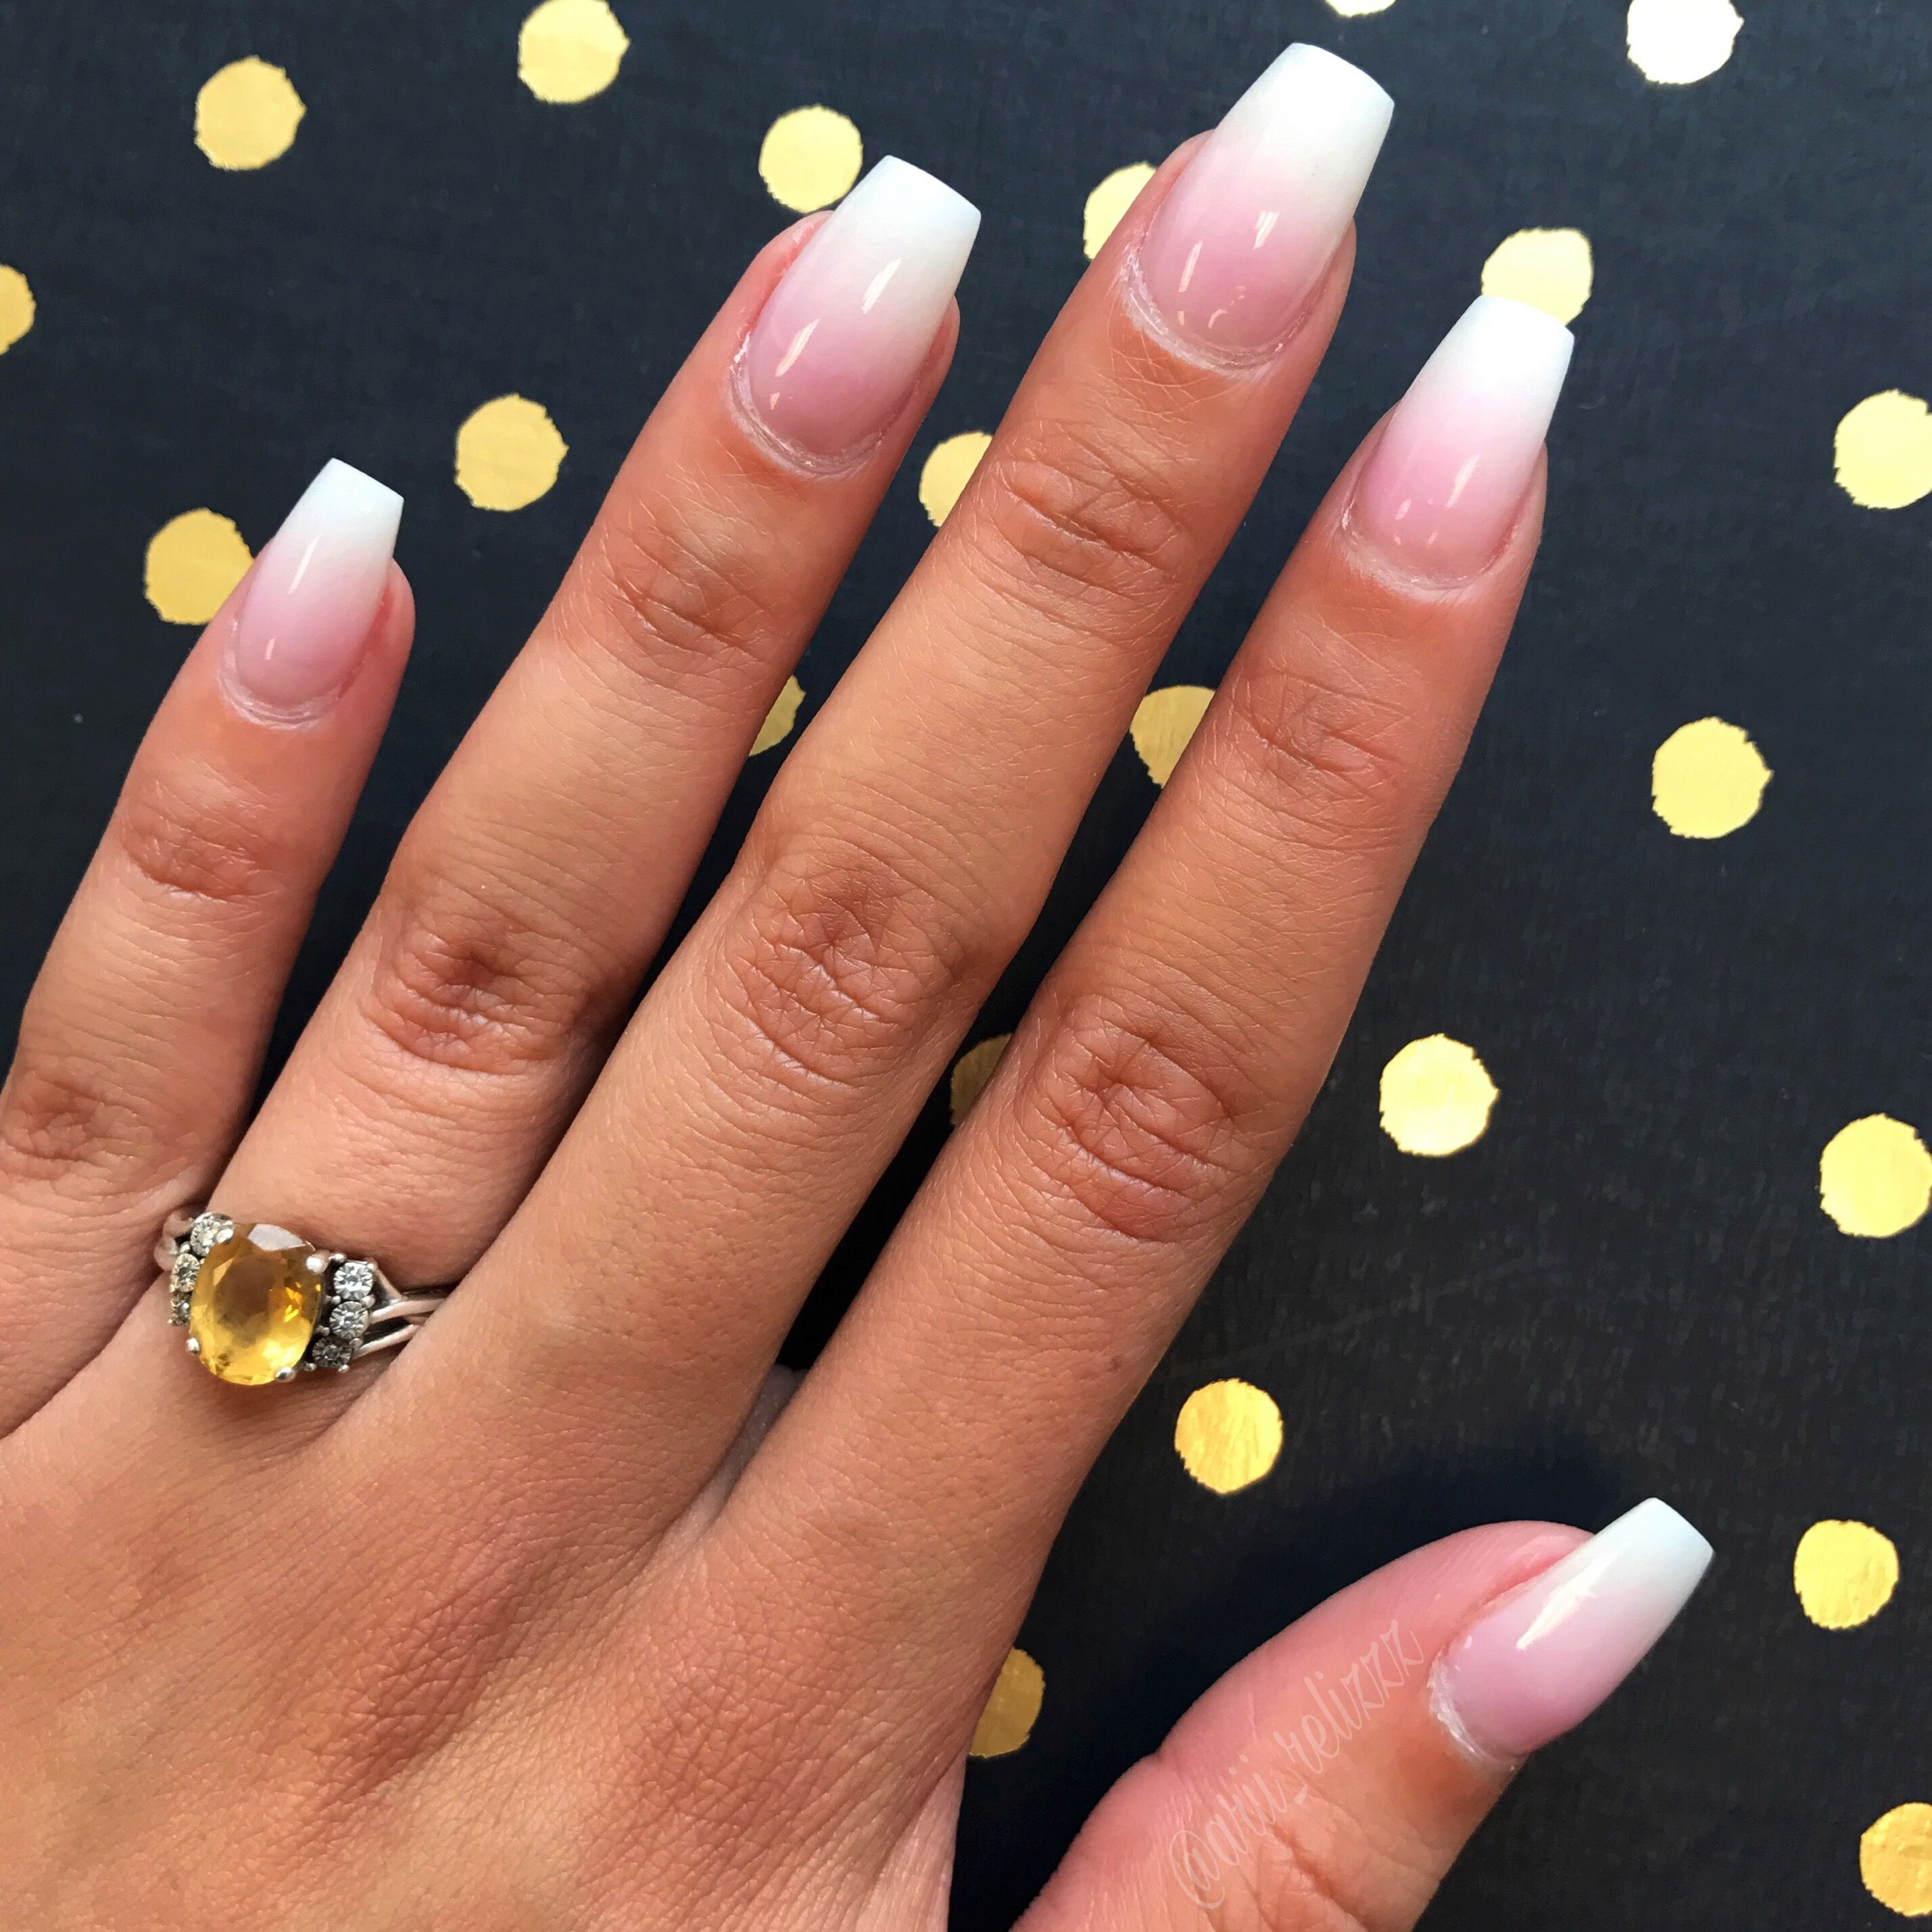 Ombre Pink And White Coffin Nails Coffin Nails Designs Pink Nails Baby Pink Nails